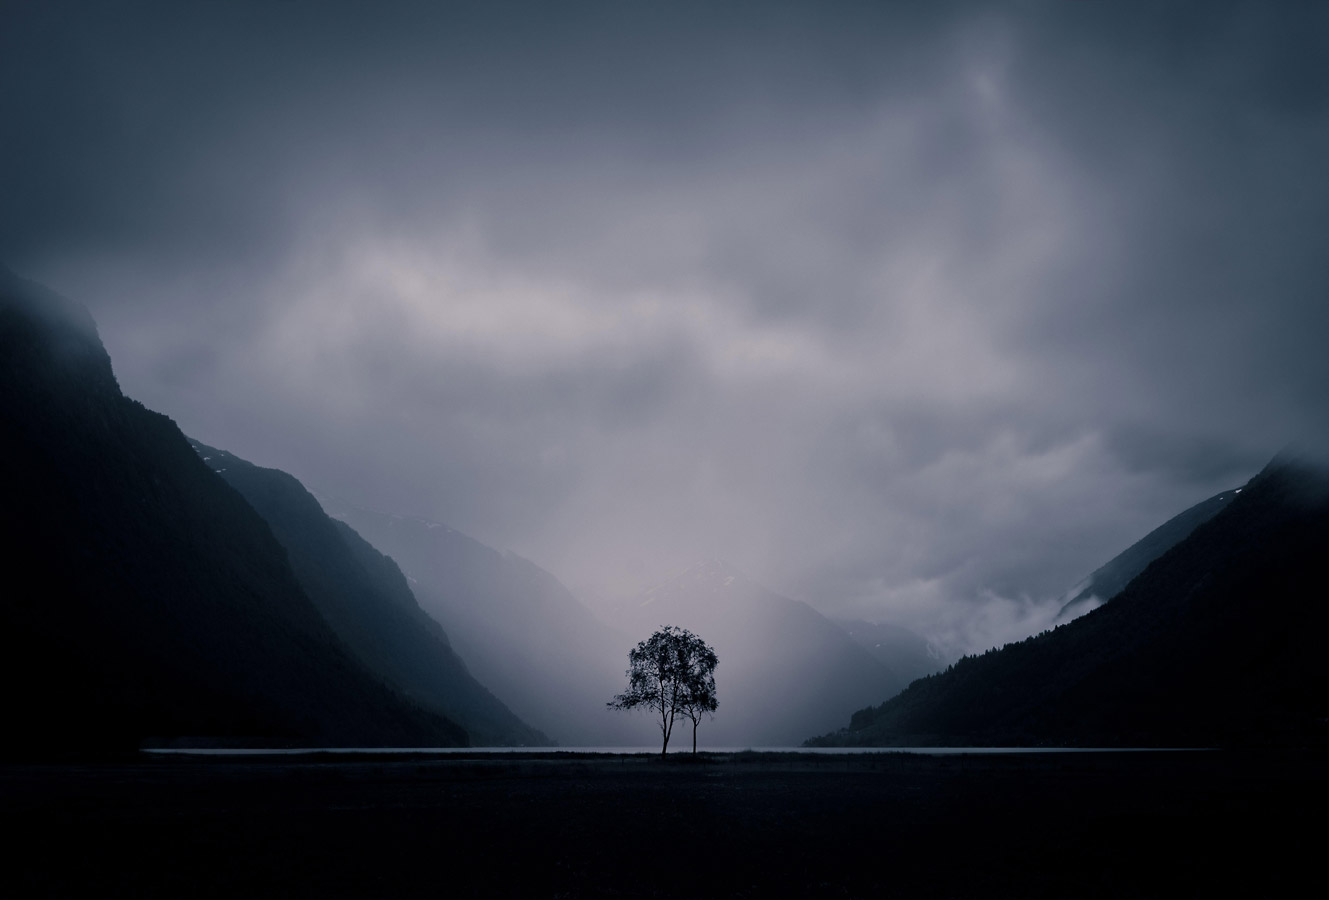 Tree, © Pavla Baťková, Nature, CEWE Photo Award